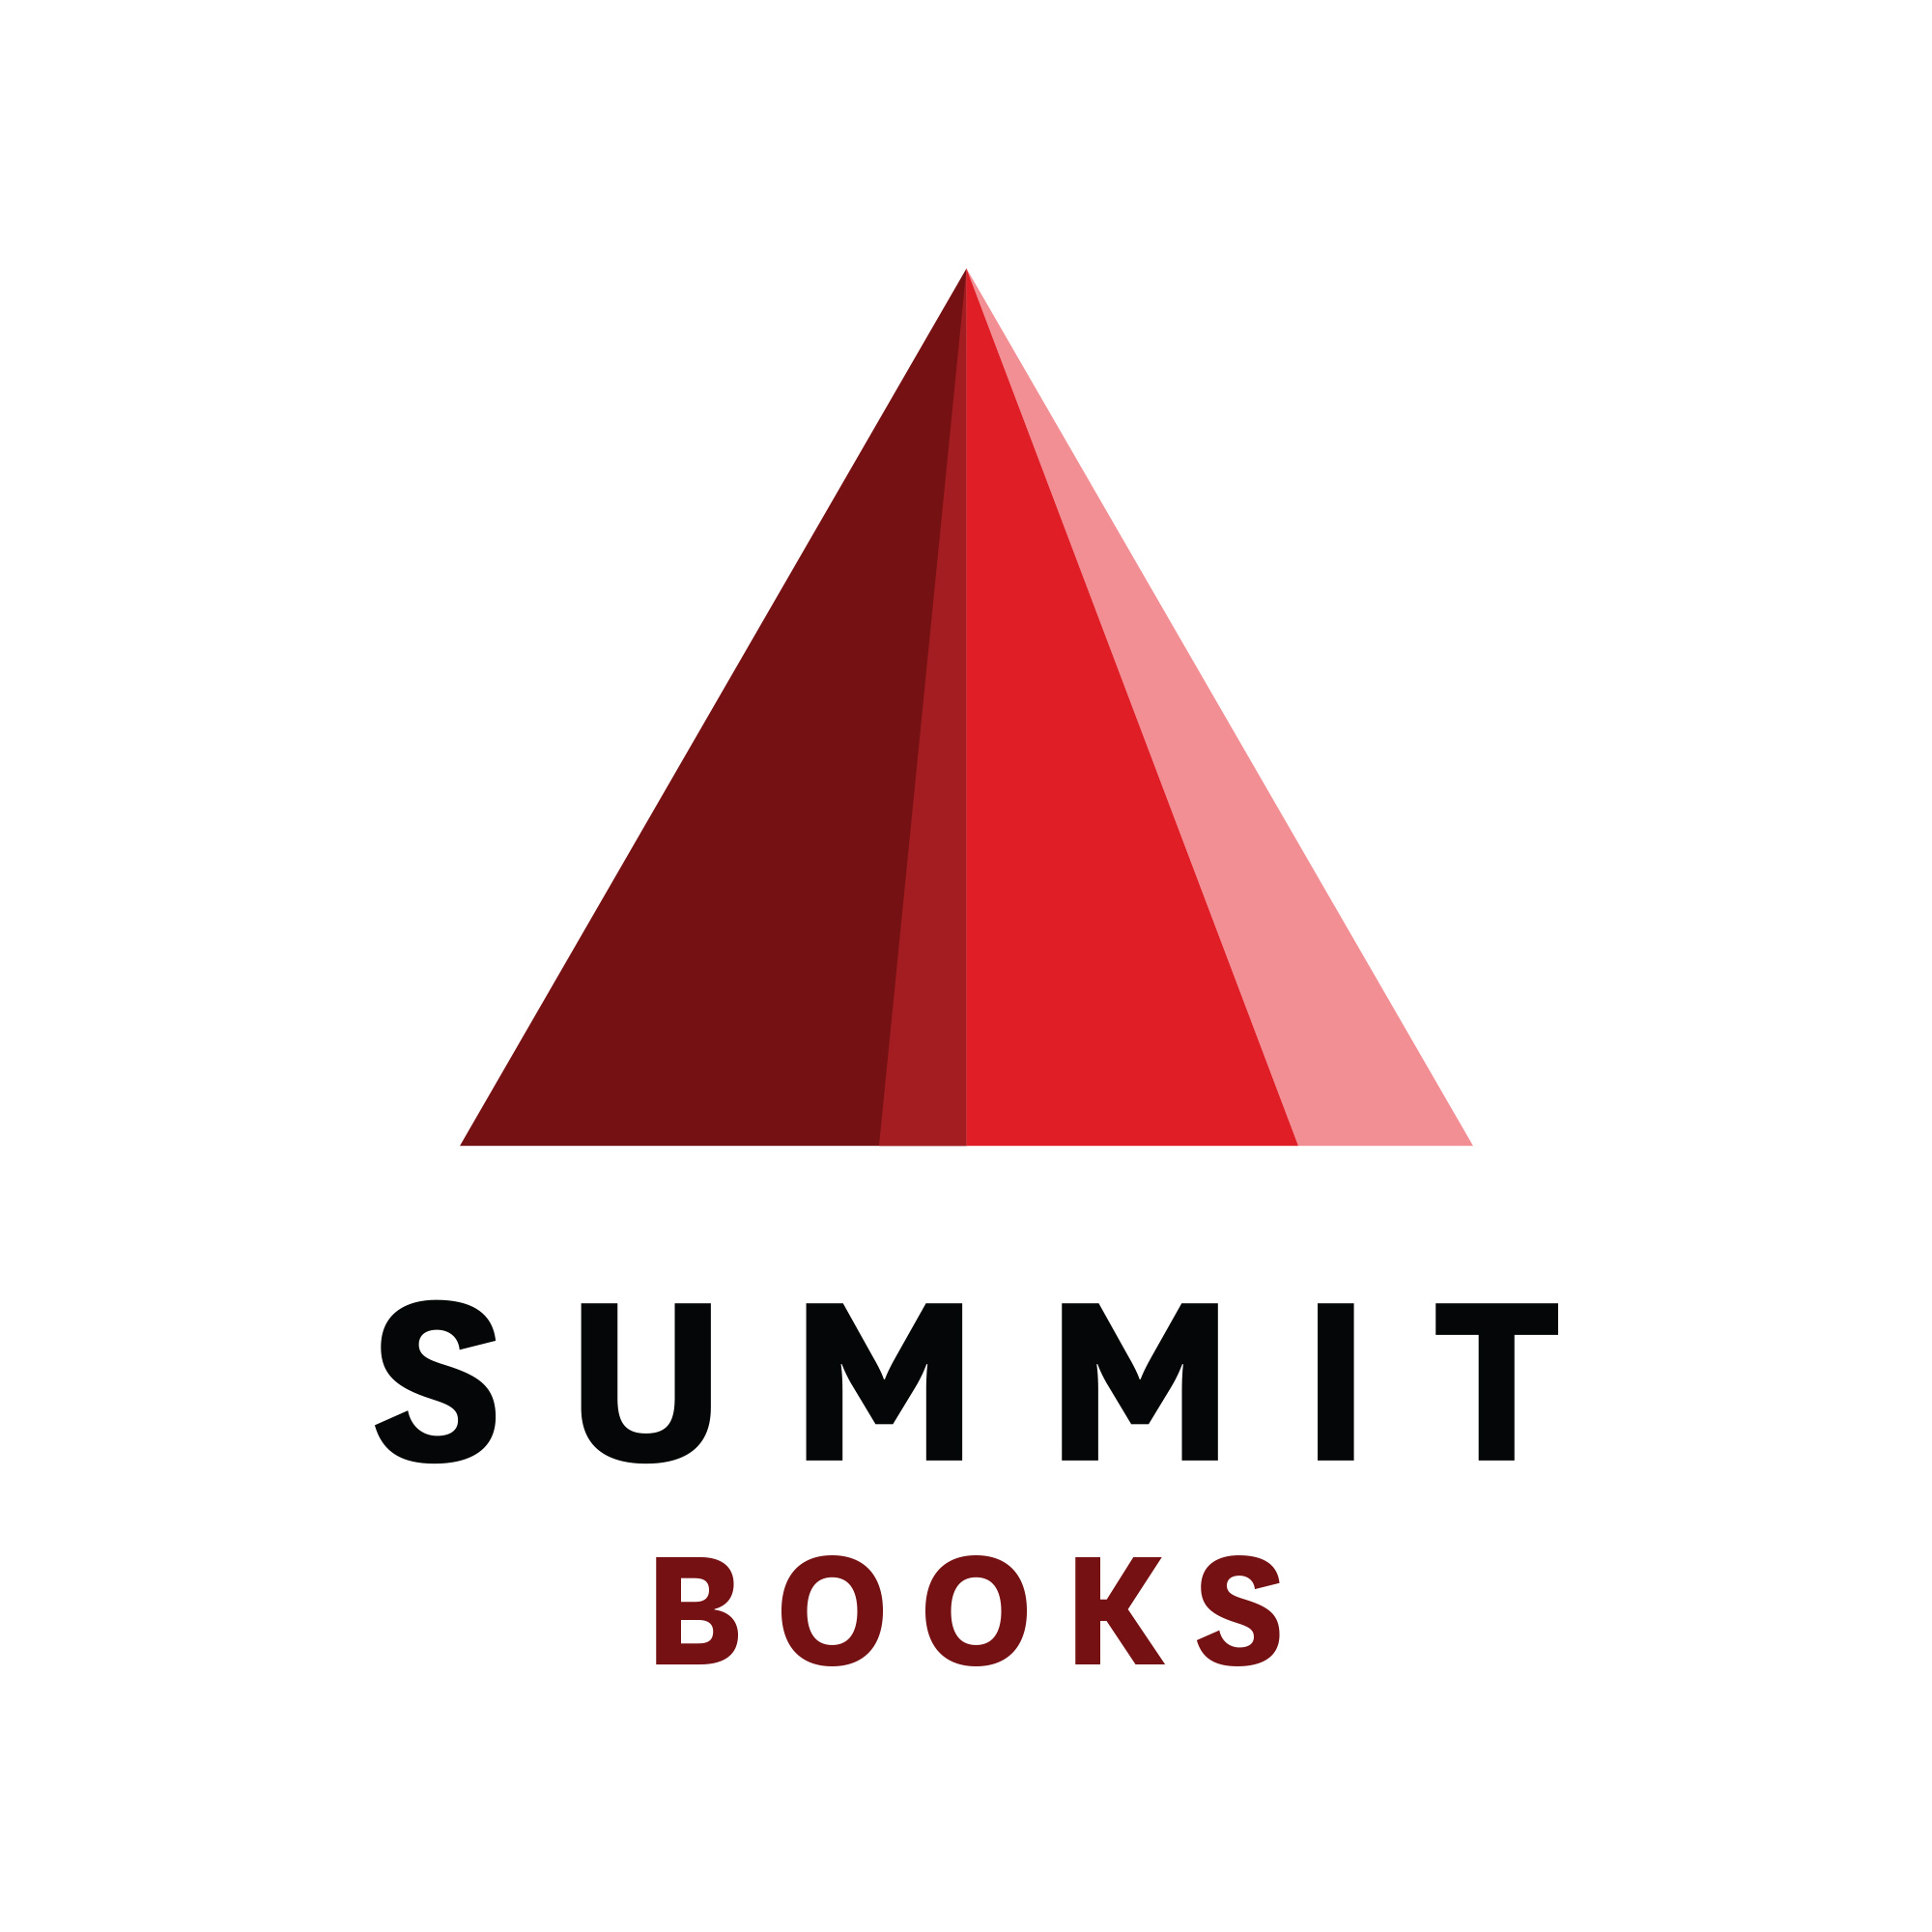 Summit Books logo